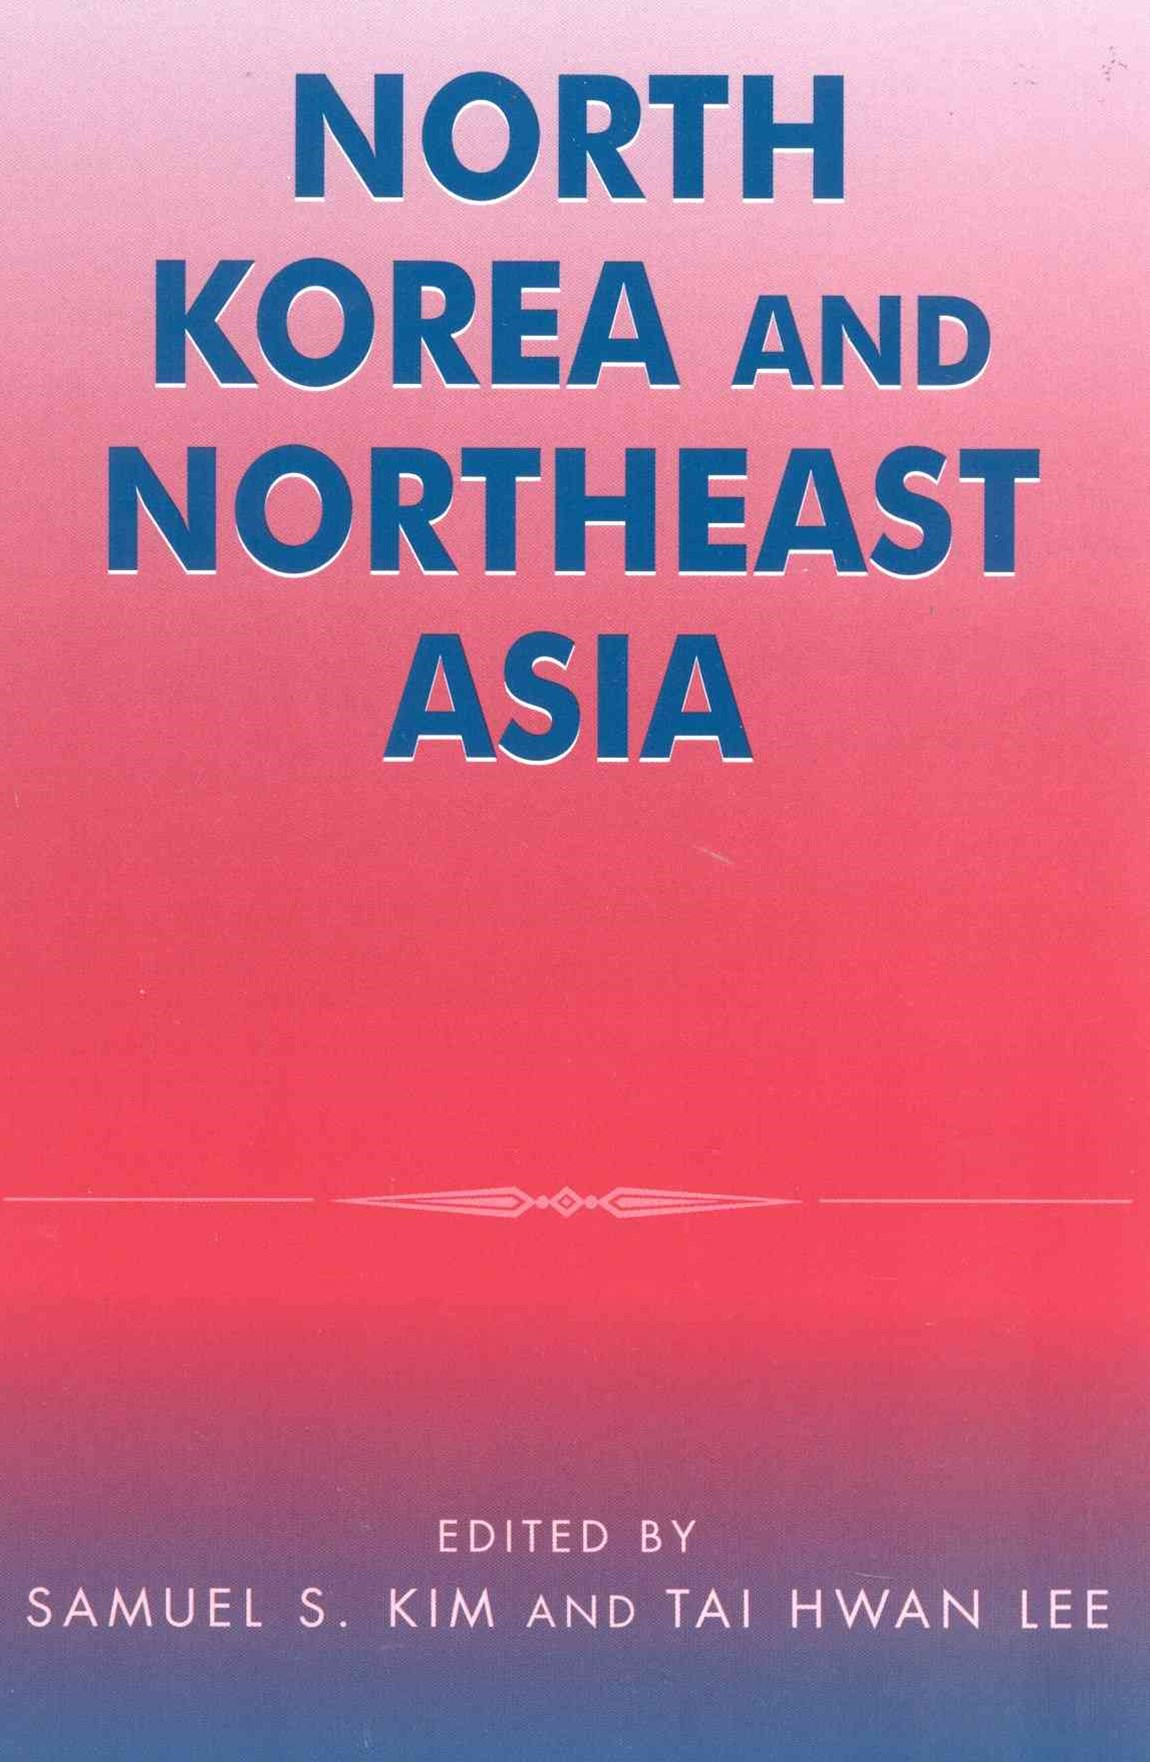 North Korea and Northeast Asia